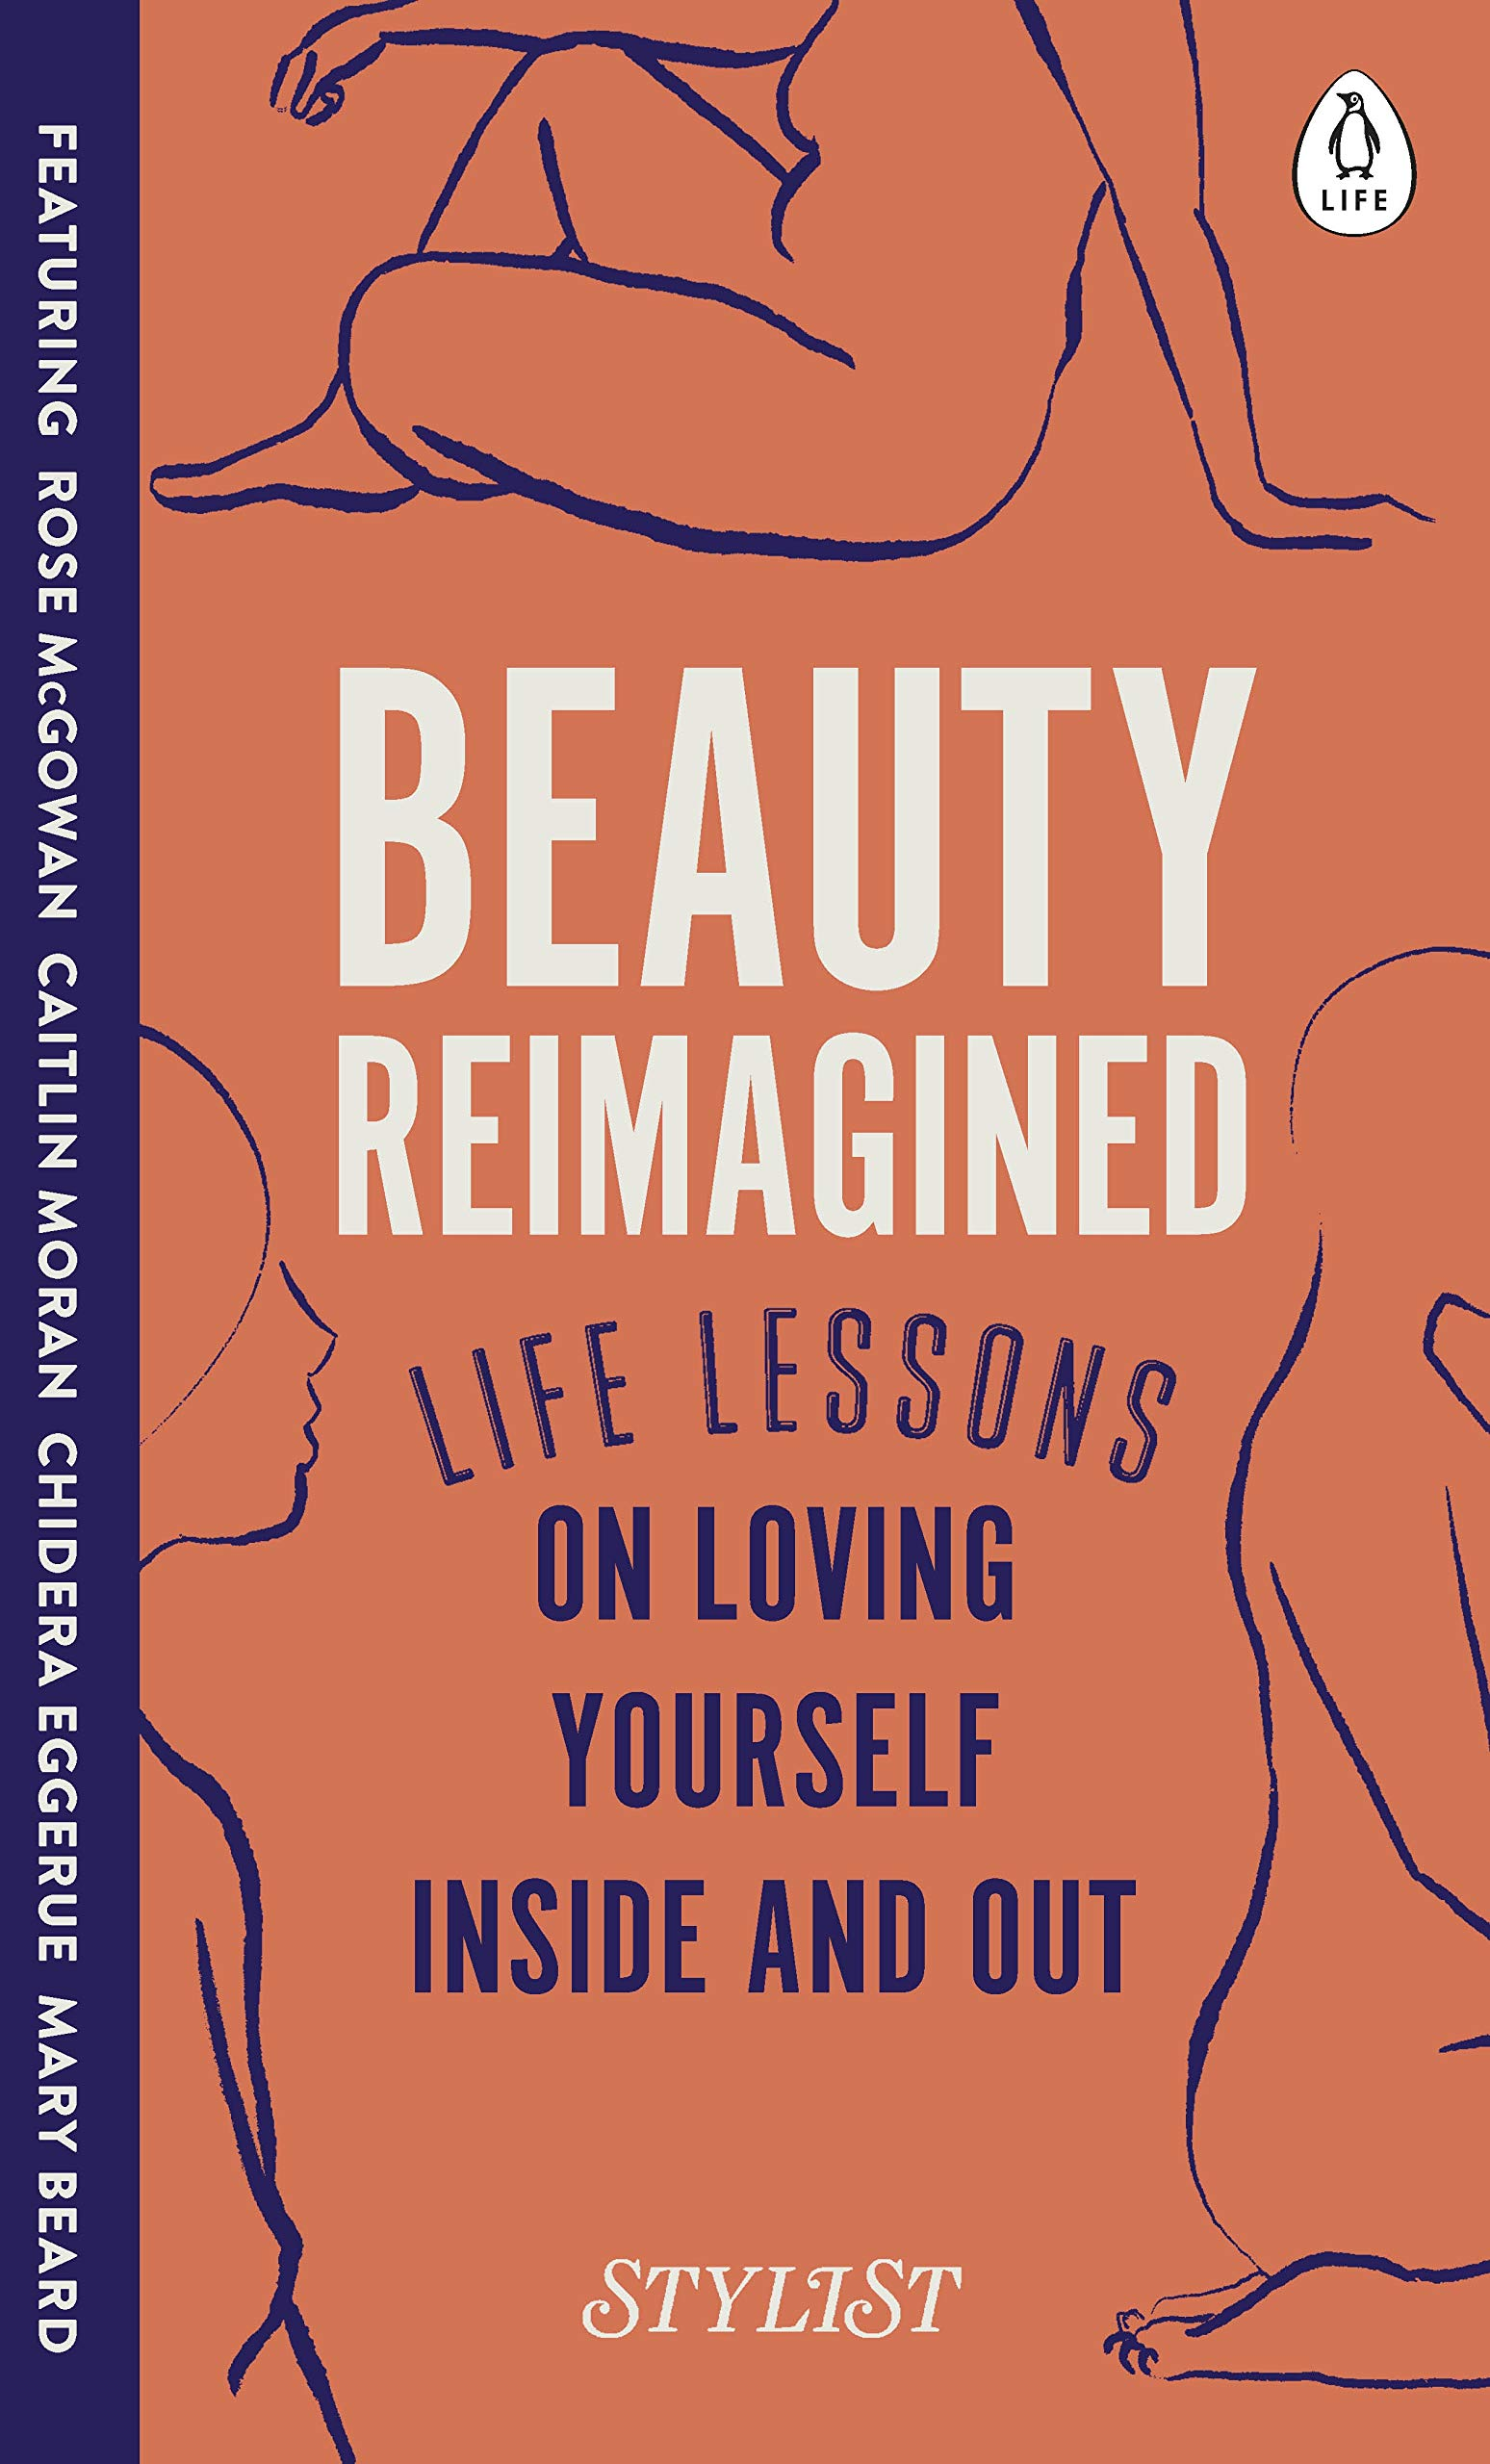 Beauty Reimagined: Life lessons on loving yourself inside and out:  Amazon.co.uk: Magazine, Stylist: 9780241384954: Books